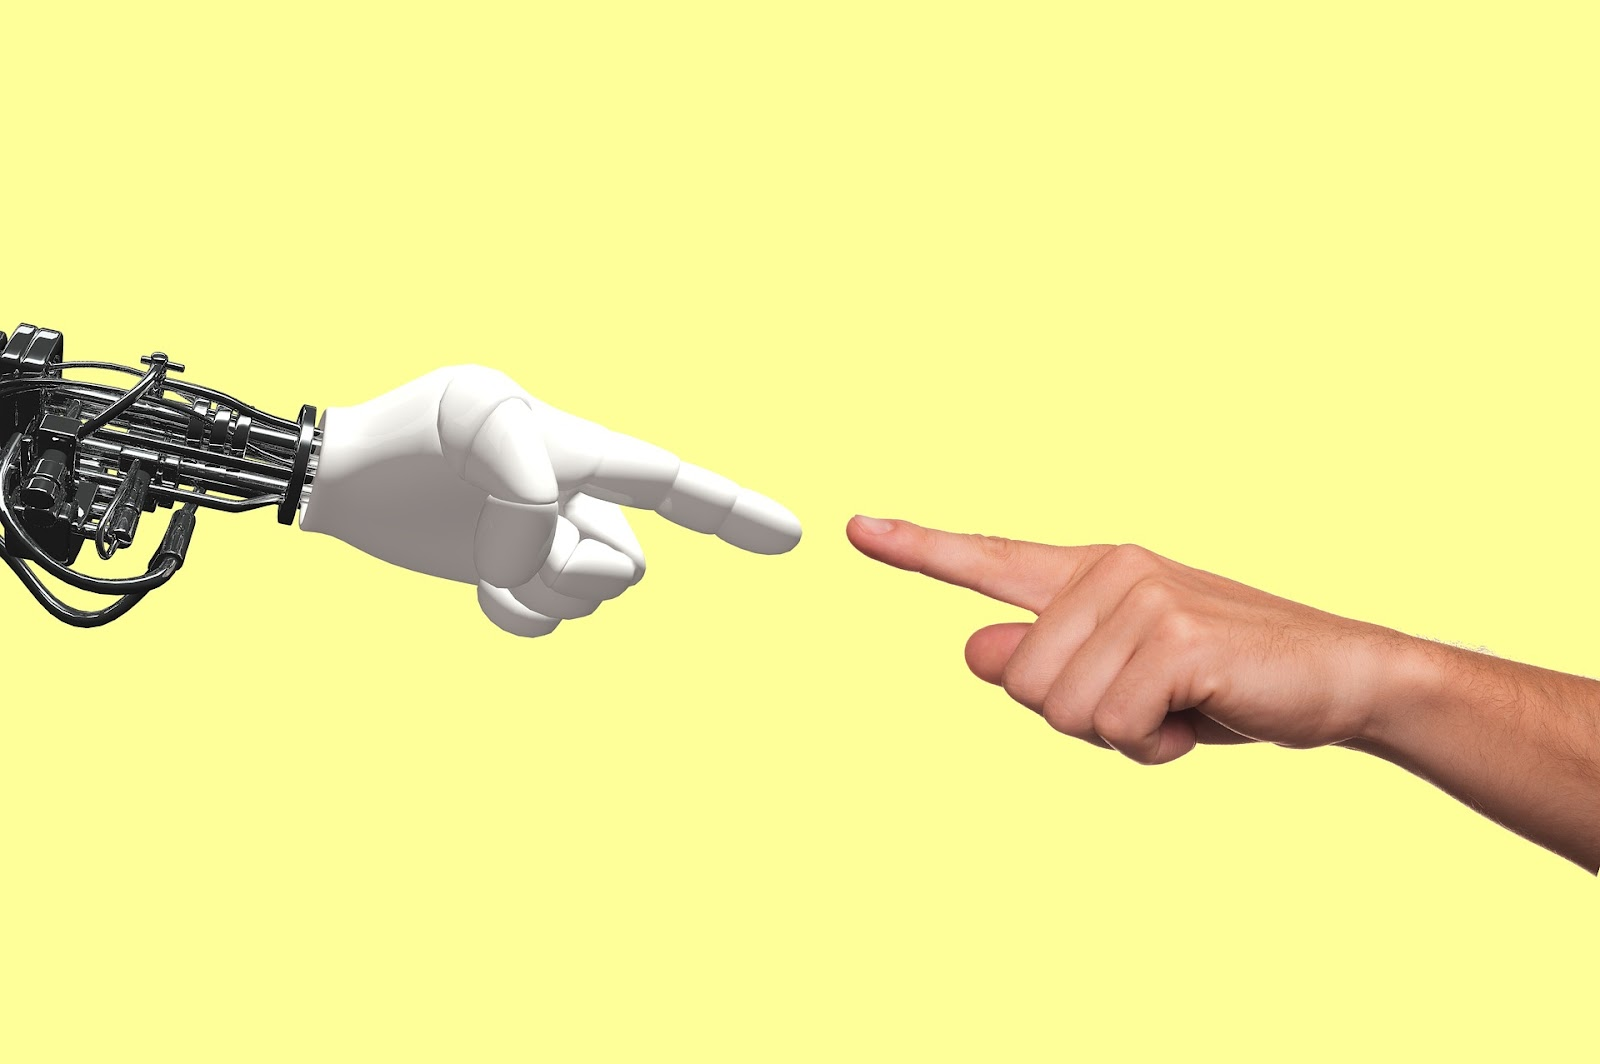 A white robotic hand reaches out to touch the tip of the index finger of a genuine human hand over a yellow background.